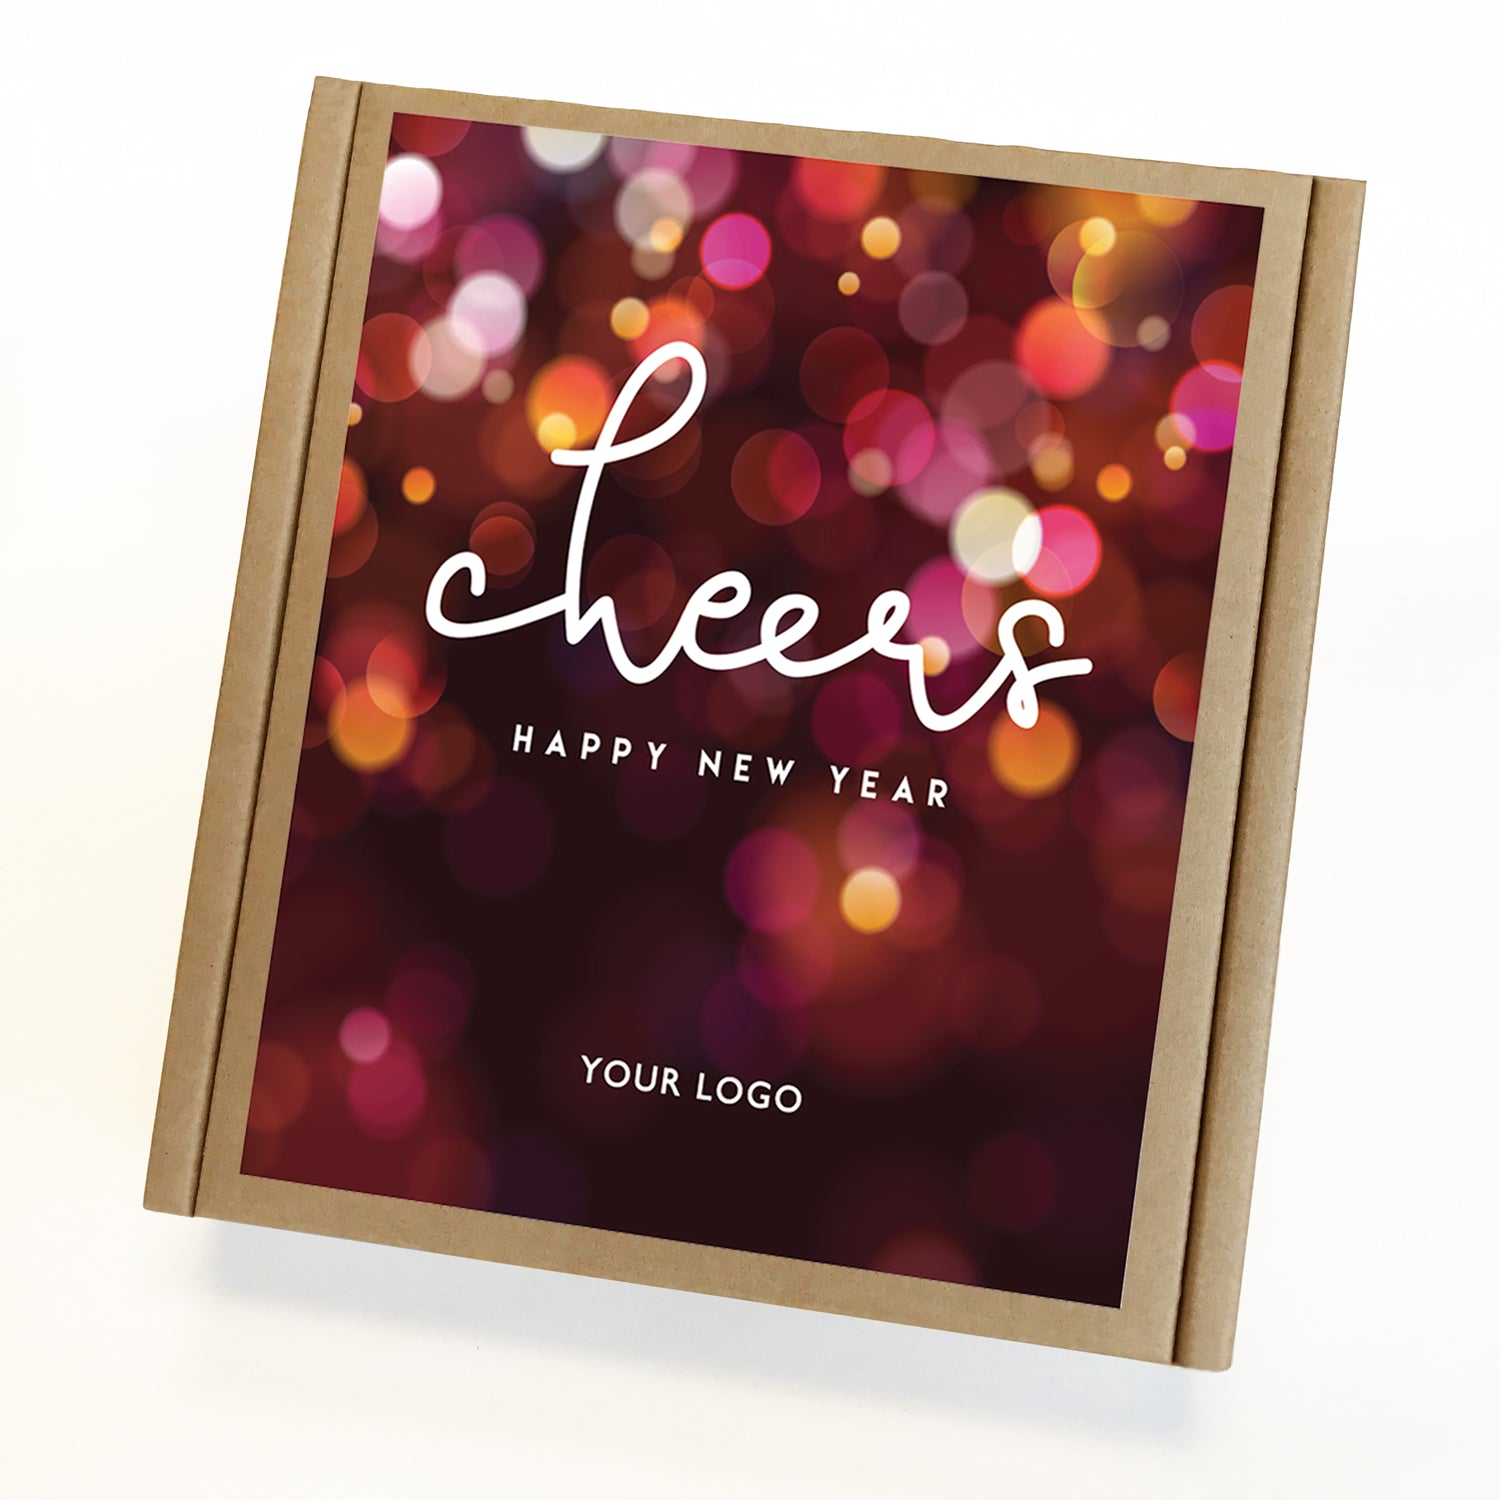 Cheers New Year Eco Custom Caramel Gift Box